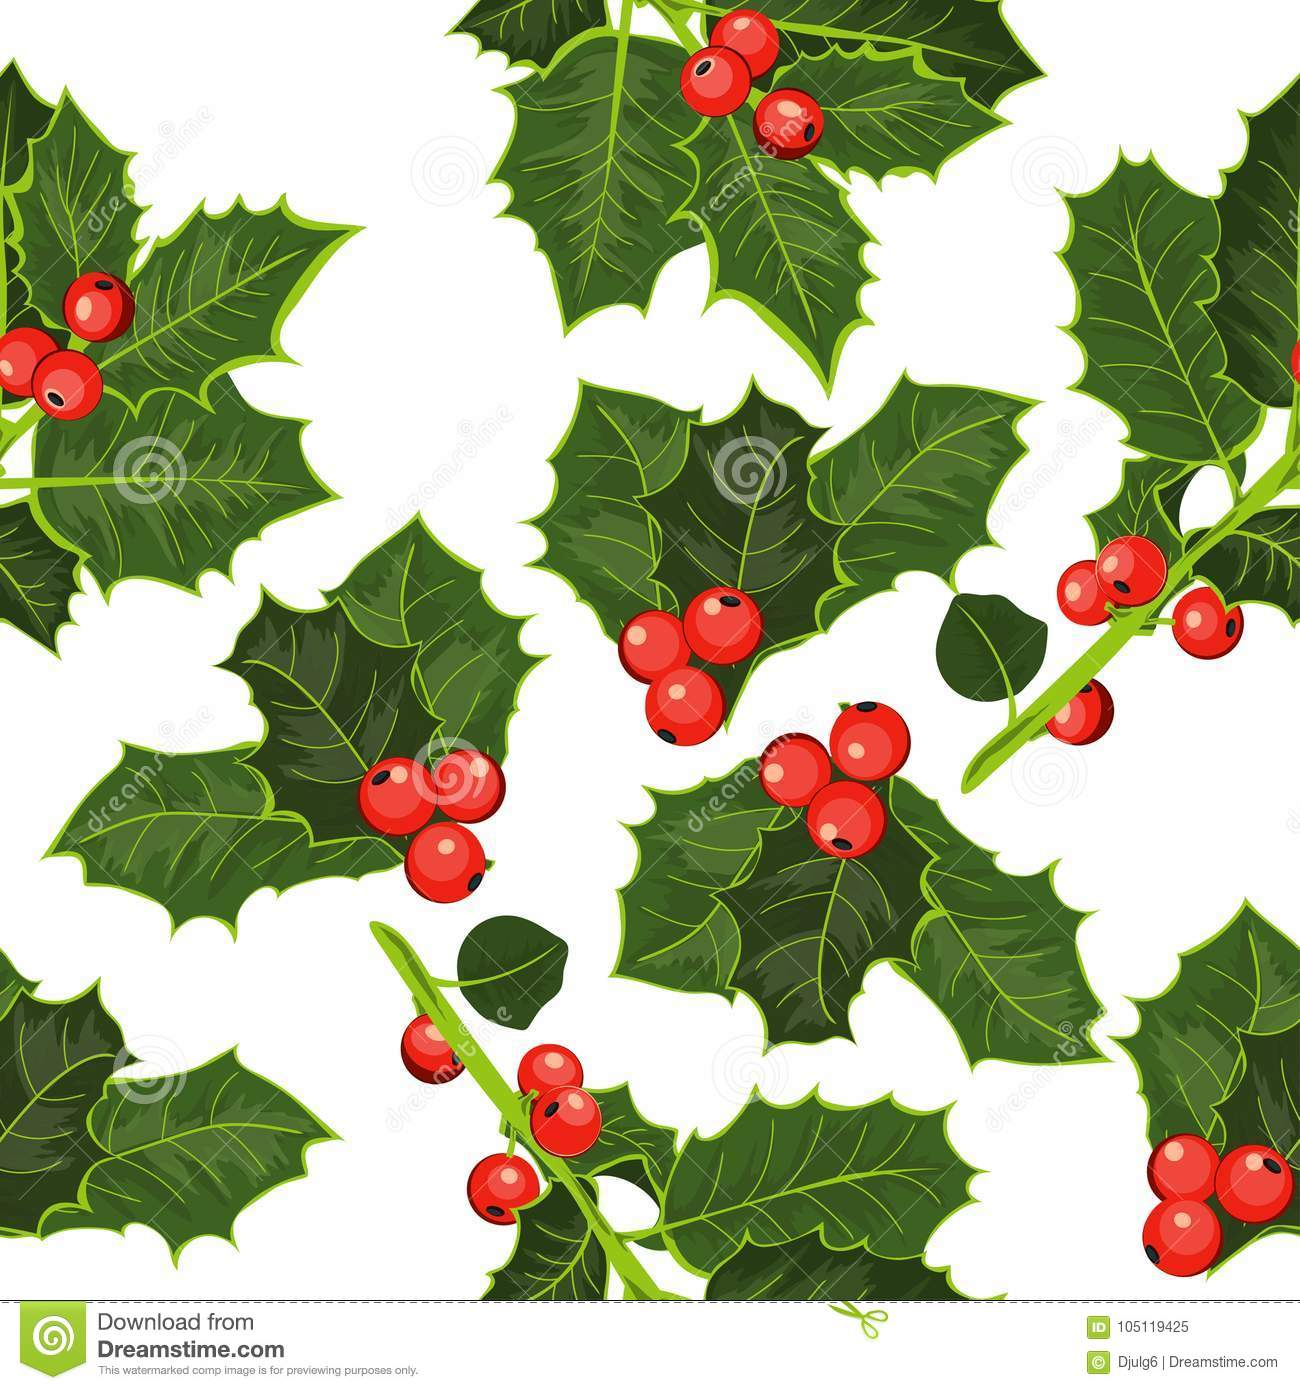 Christmas Holly Tree.Seamless Pattern With Holly Tree Happy Christmas Background